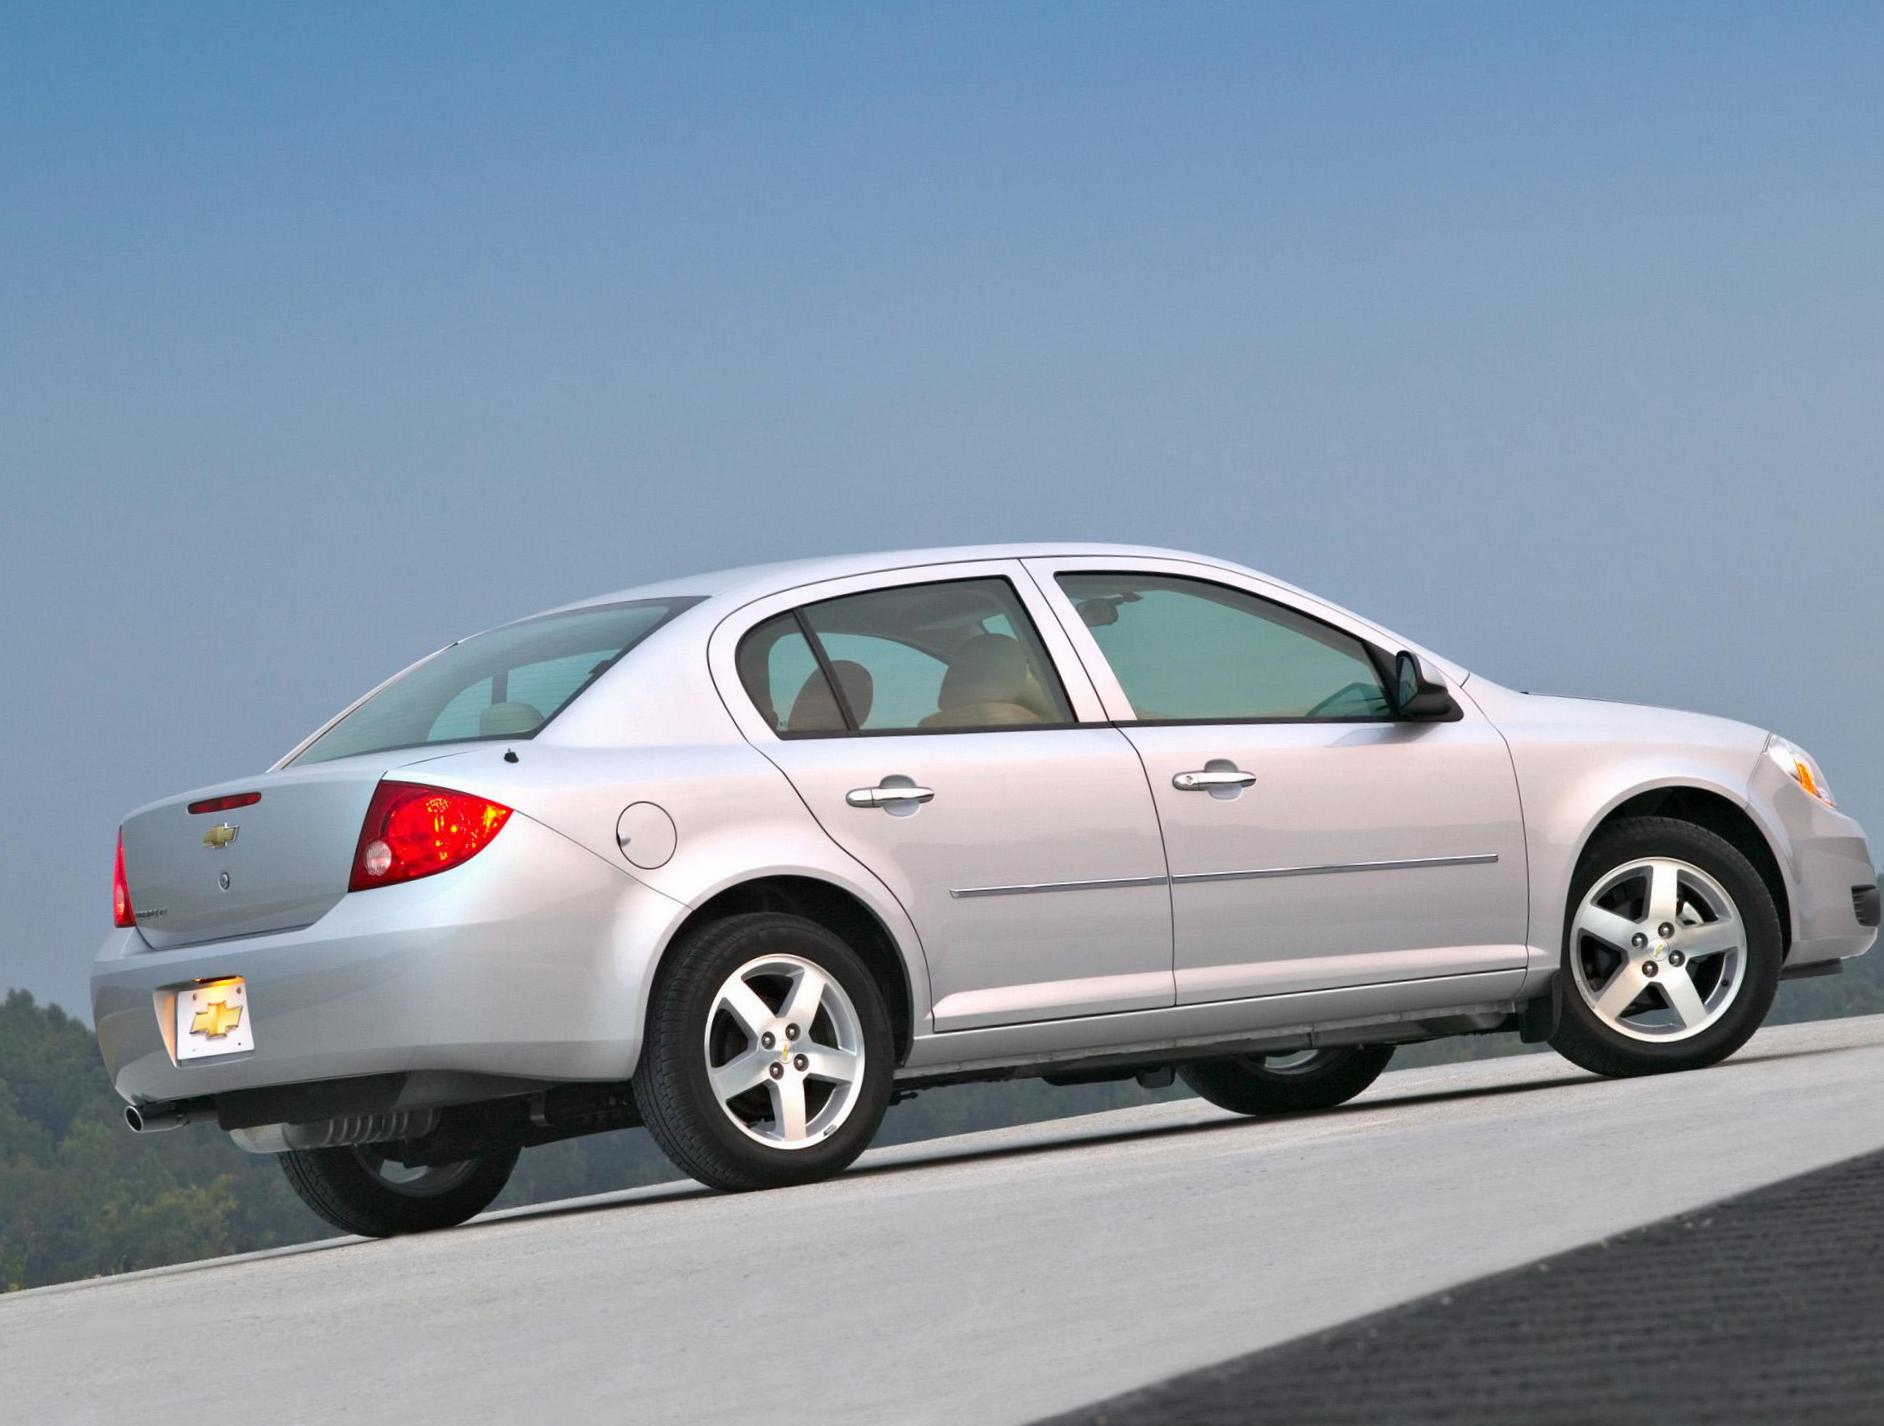 Chevrolet Cobalt Sedan models hatchback